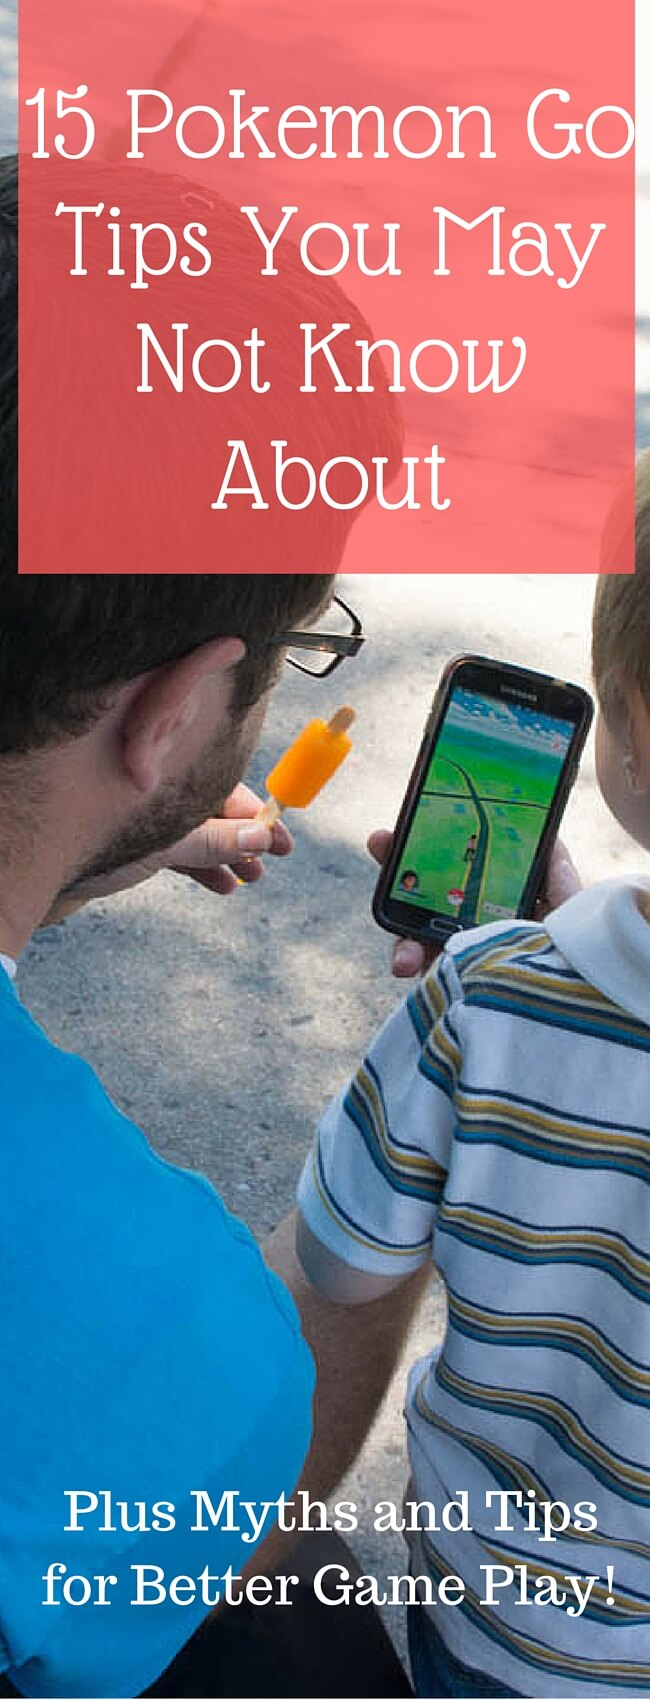 Have you been bit by the Pokemon Go! bug yet? Here are 15 Pokemon Go tips you may not know about, as well as tips for more fun and safer game play! via @clarkscondensed